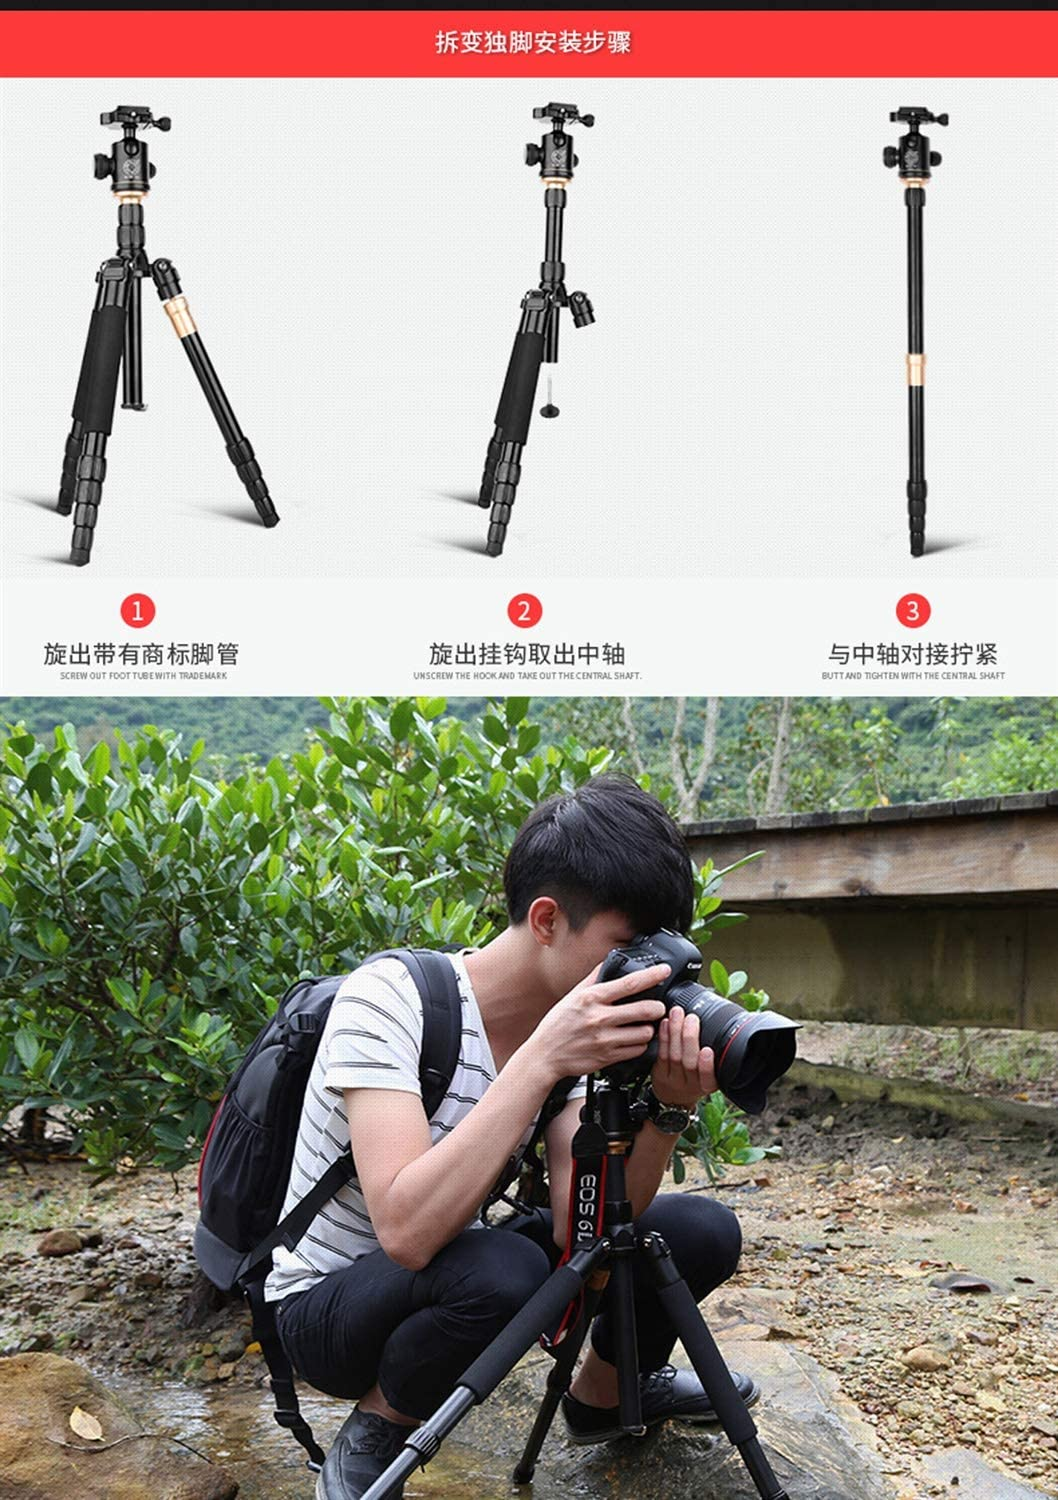 Universal Outdoor Photography mounts monopods Color : Black Supports Multiple Modes of Rugged Camera tripods LLluckyHW Professional Photo tripods and monopods